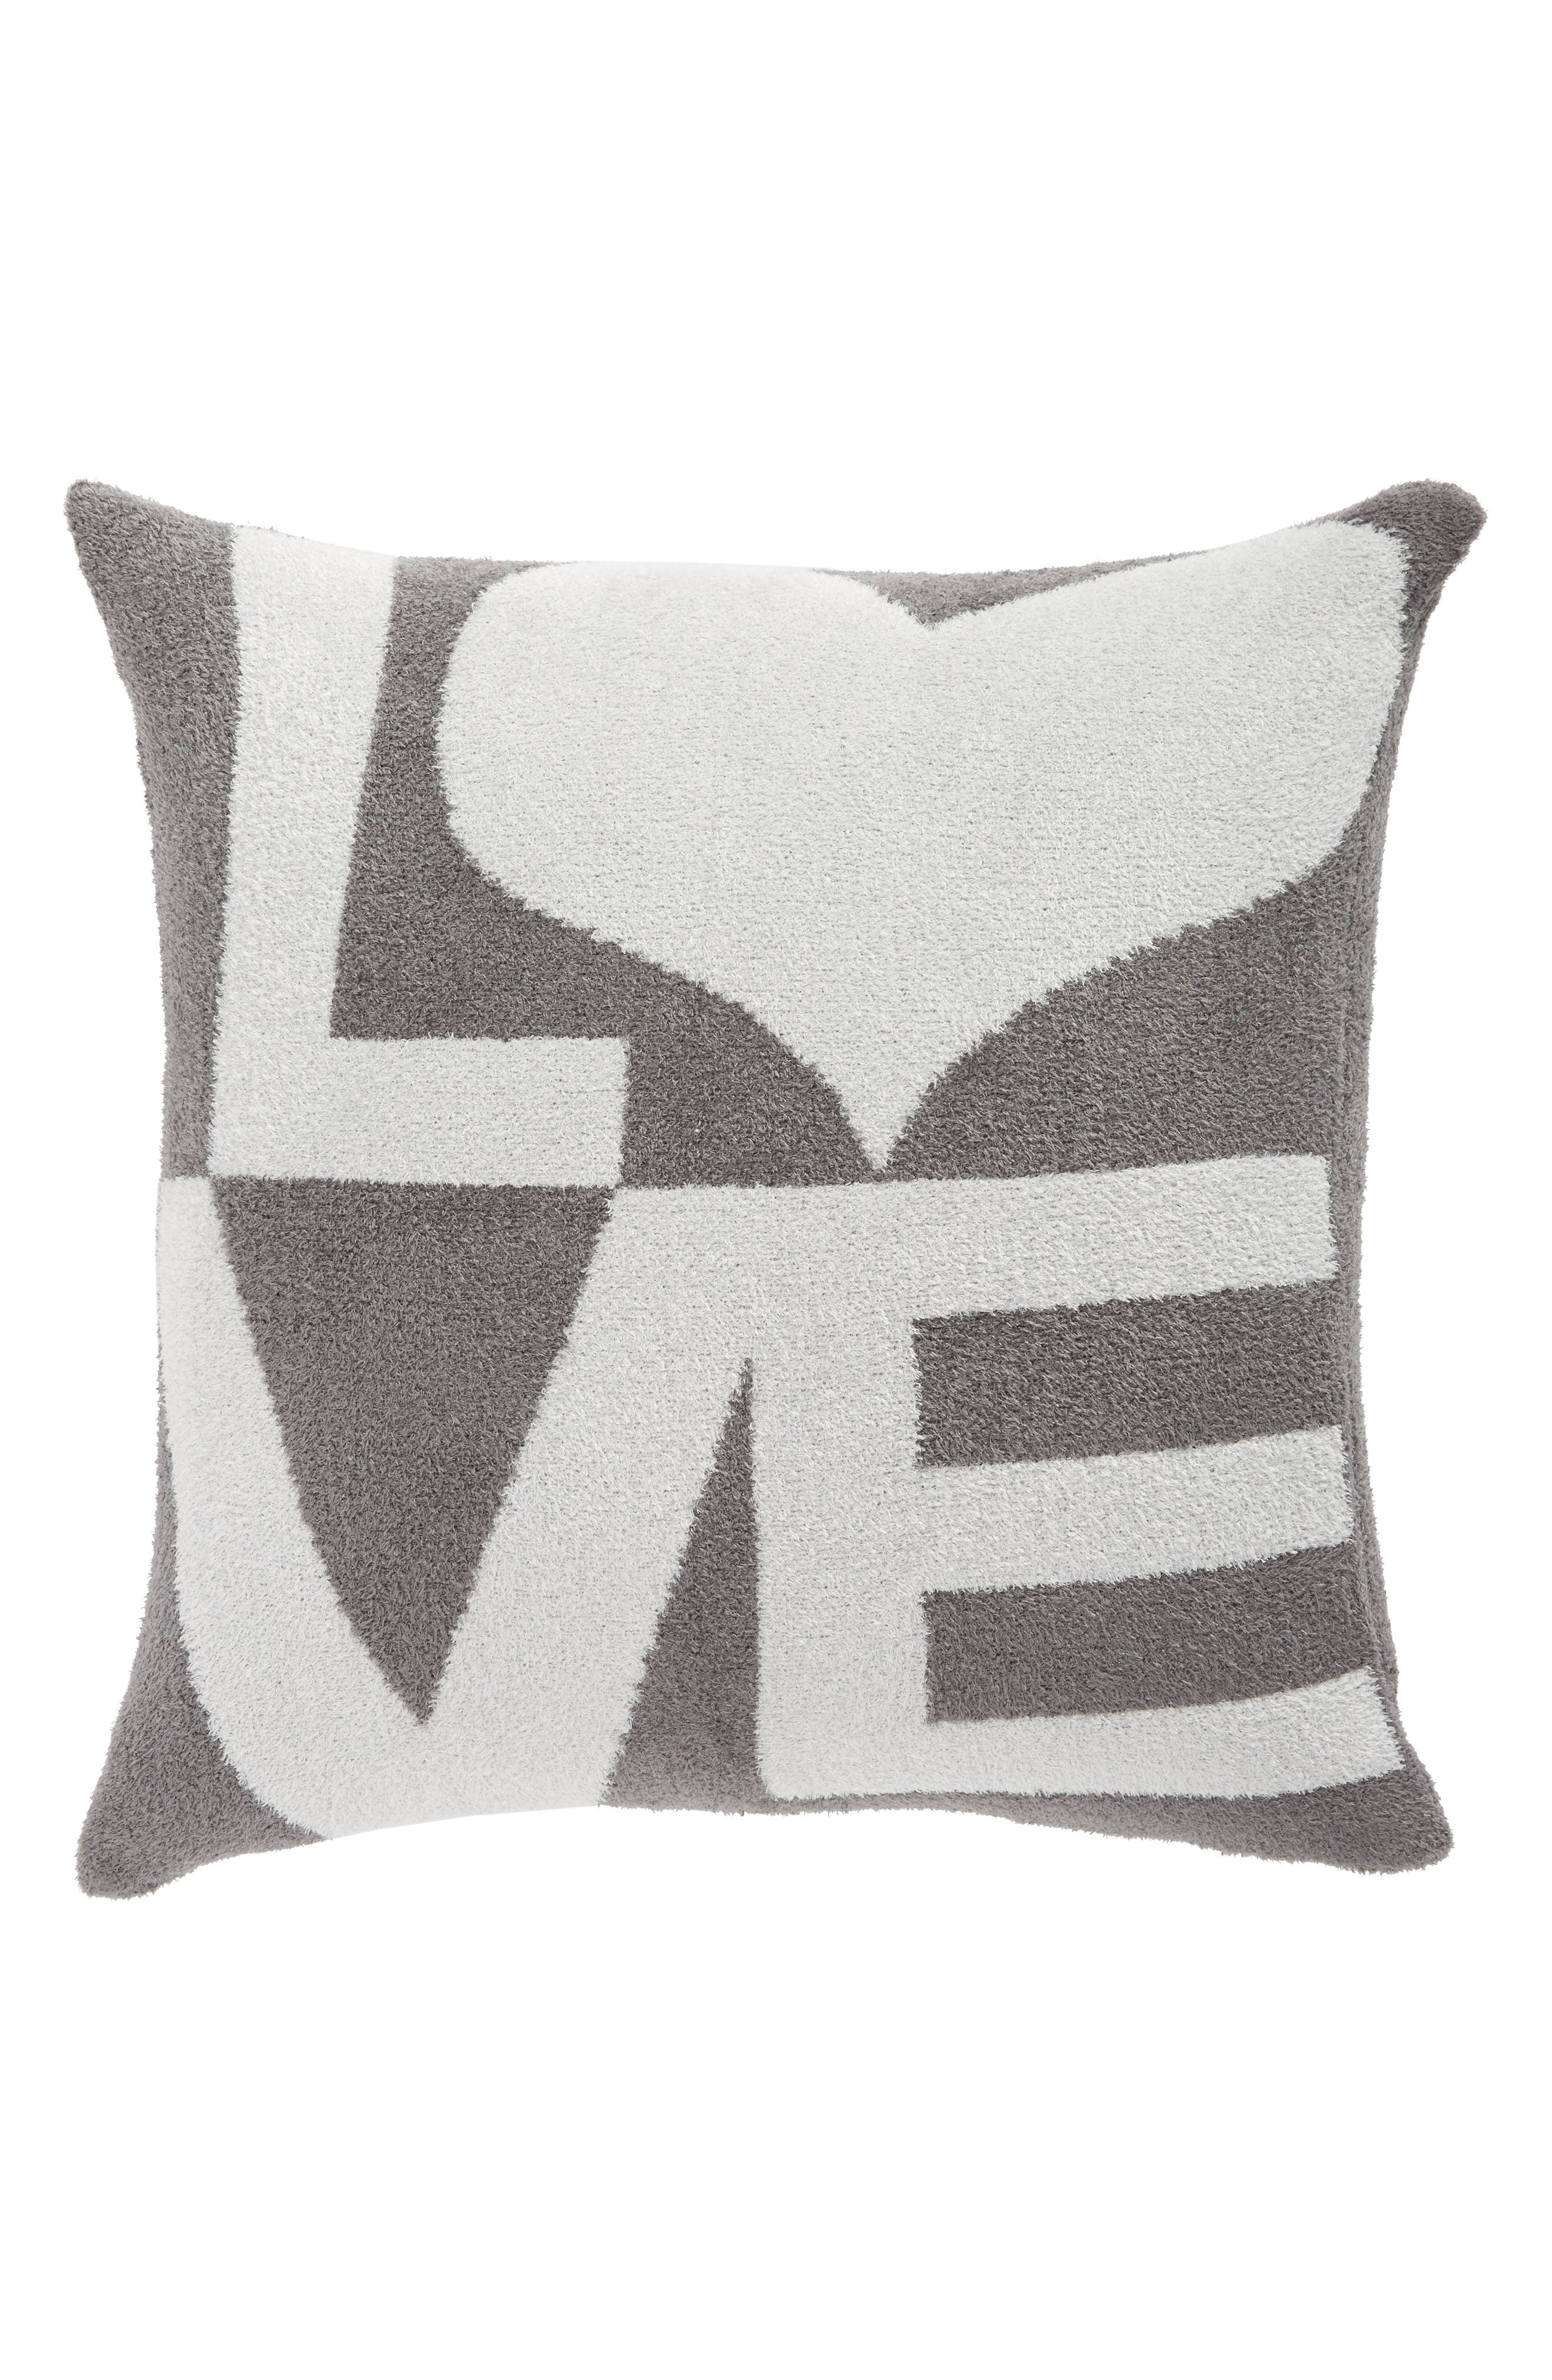 GIRAFFE AT HOME,                             Dolce Love Throw Pillow,                             Main thumbnail 1, color,                             CHARCOAL/ SILVER